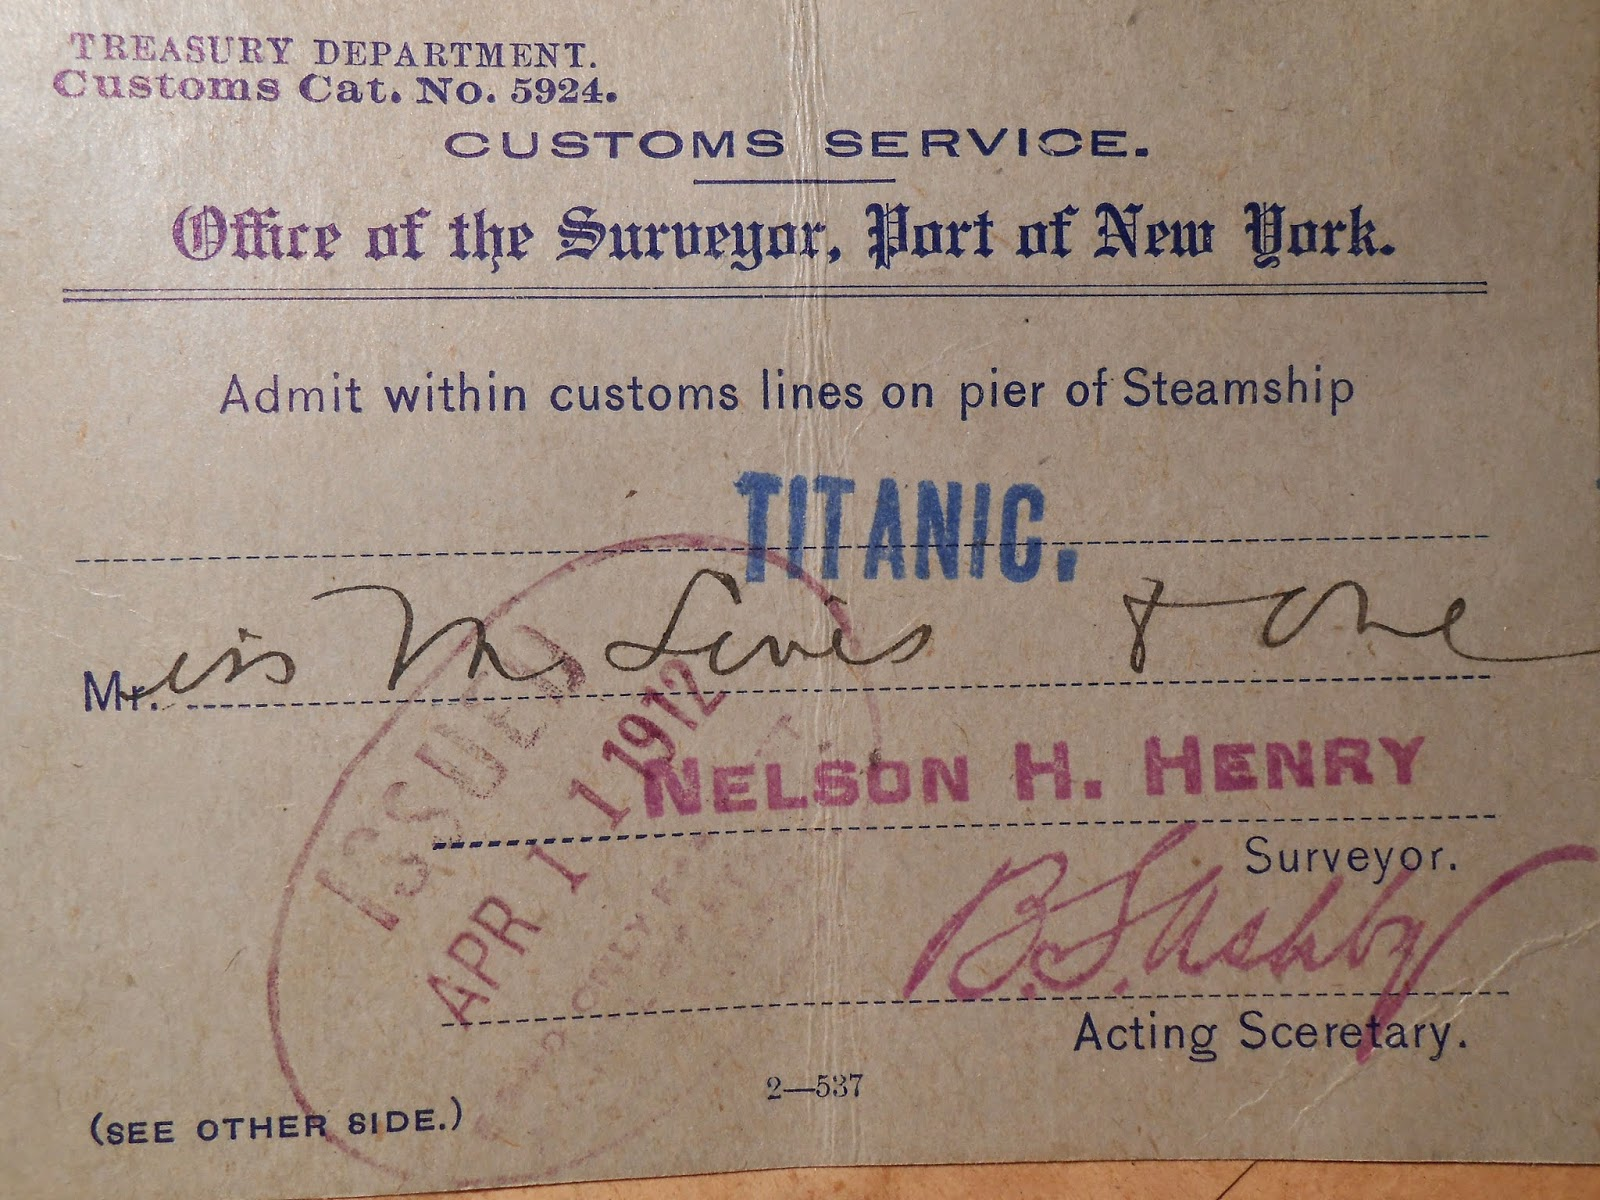 A photograph of the ticket for the Titanic.